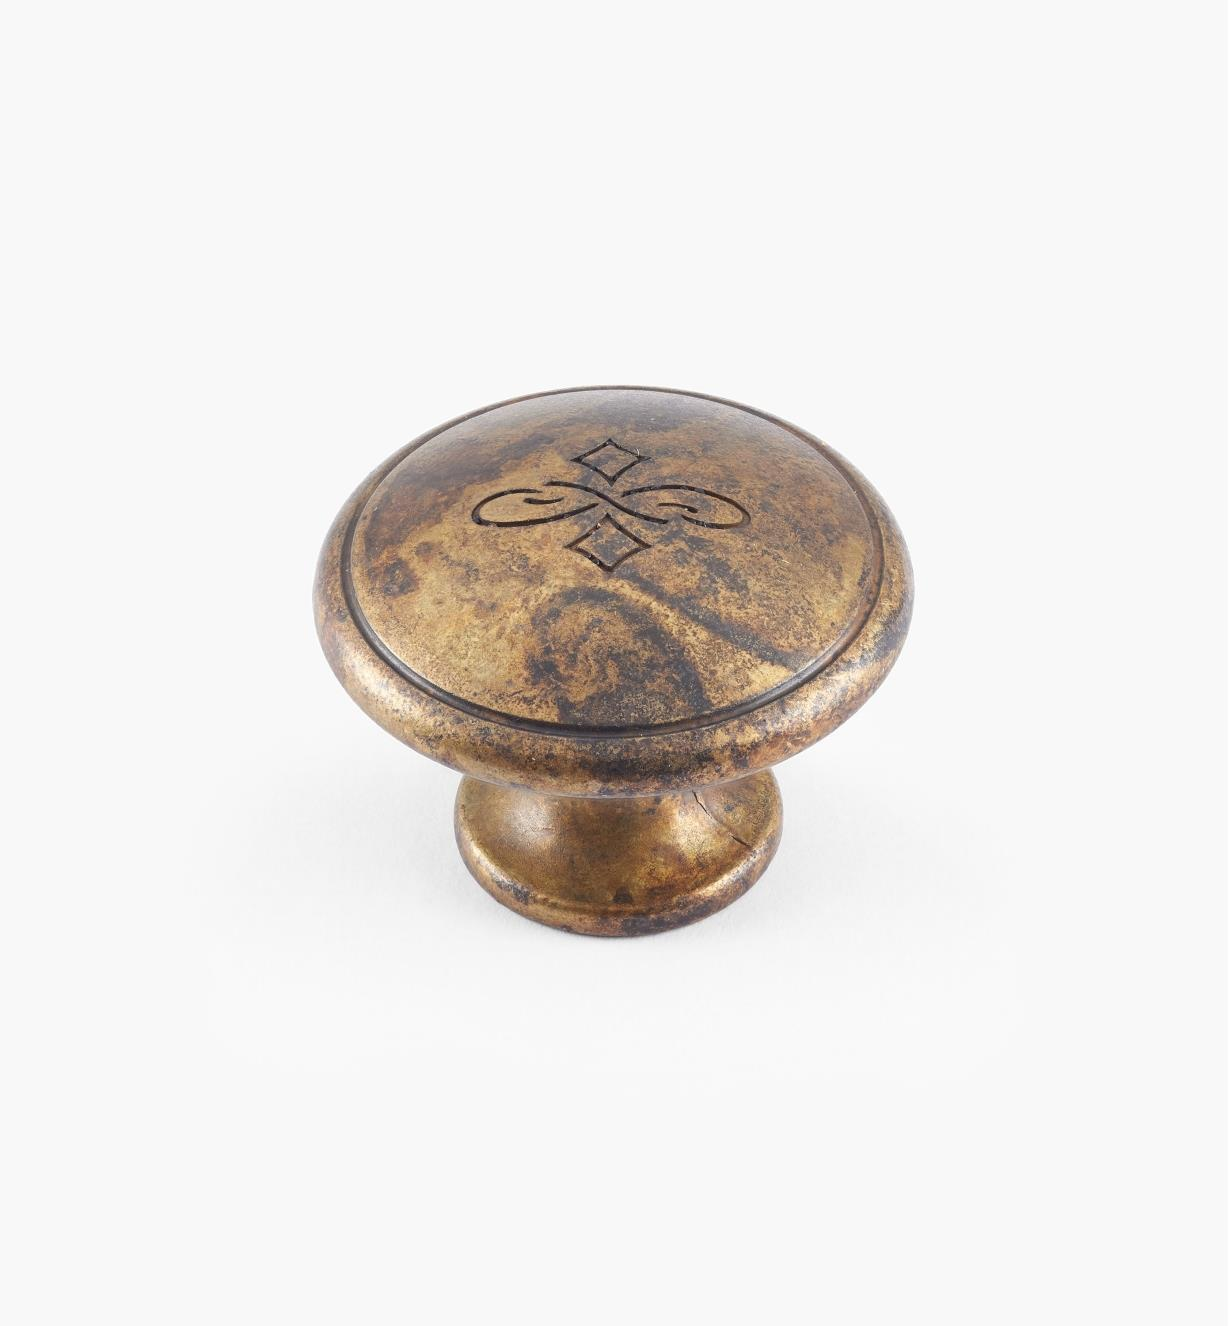 01X4111 - 30mm x 22mm Old Brass Knob